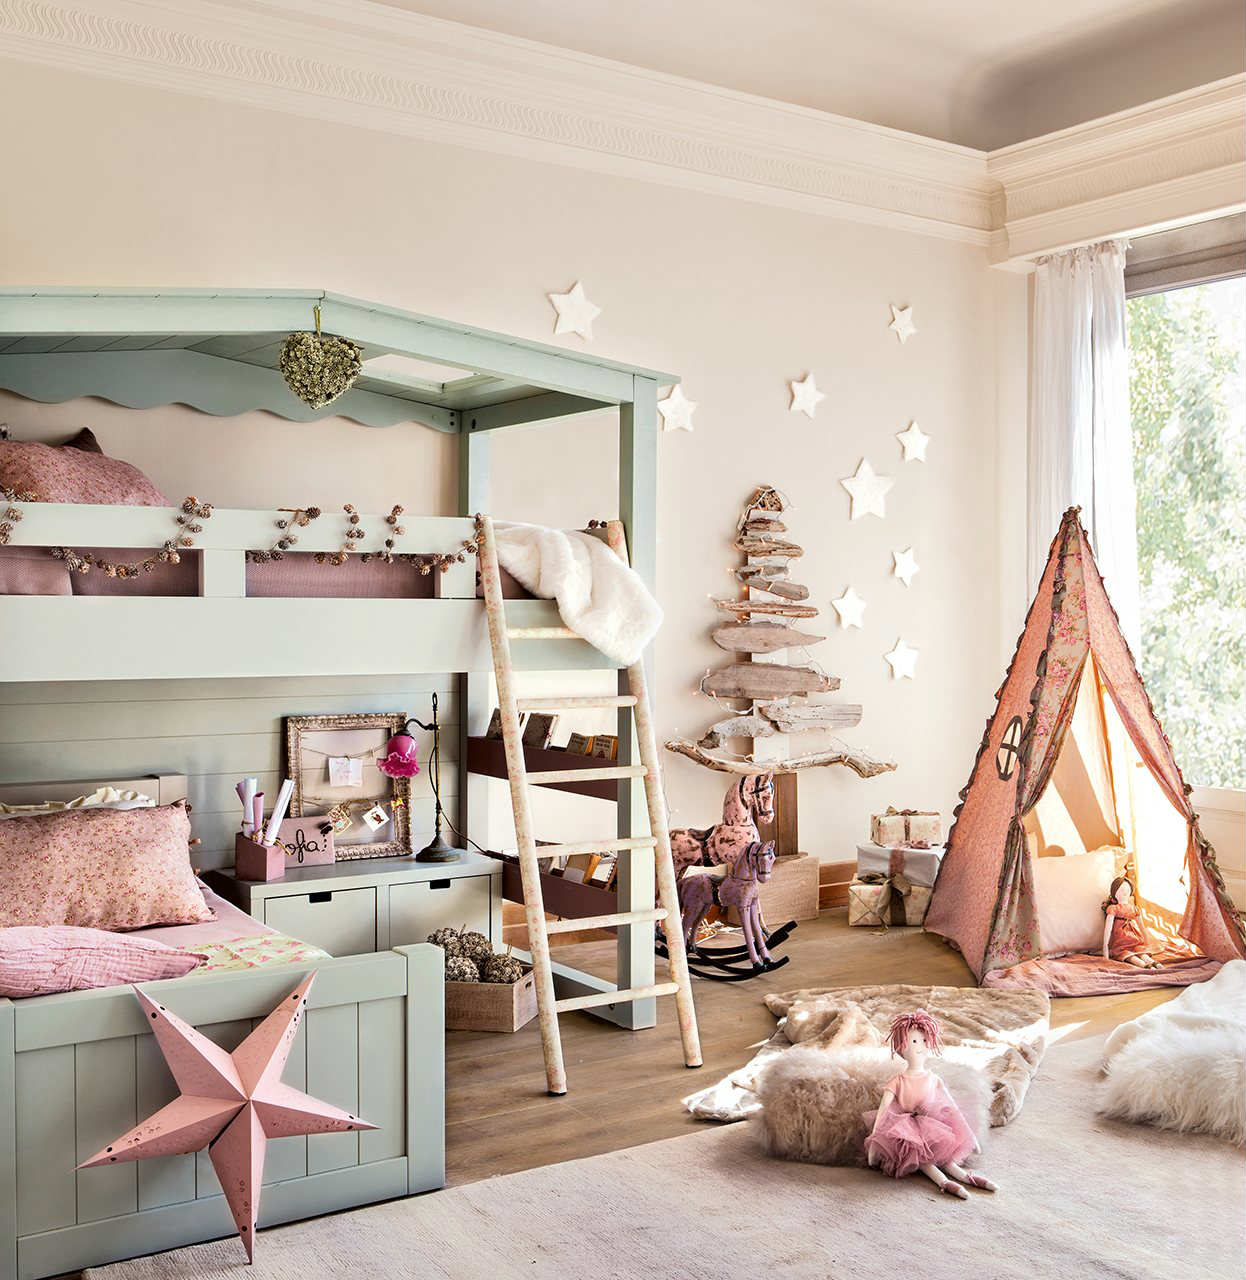 Kids Bedroom 2017 top 7 nursery & kids room trends you must know for 2017